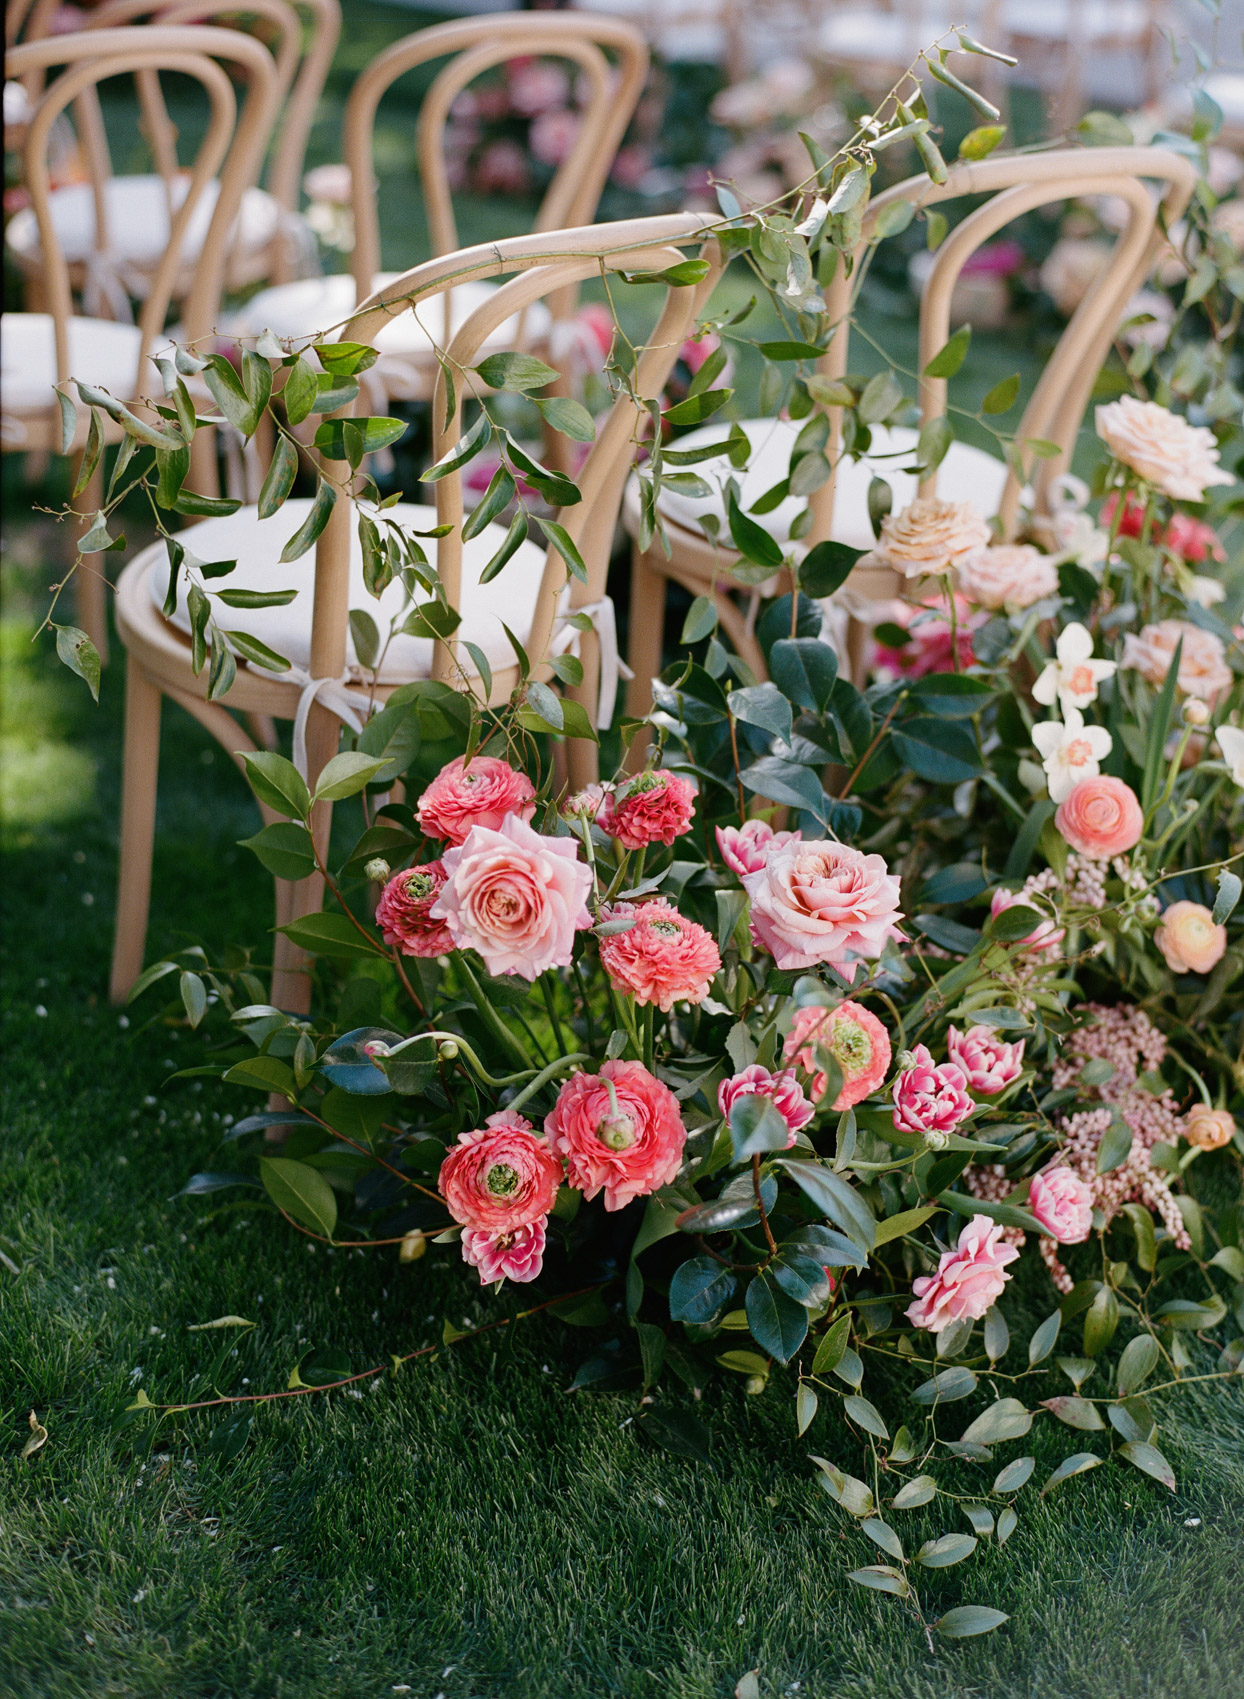 ceremony chairs with flowers in the grass